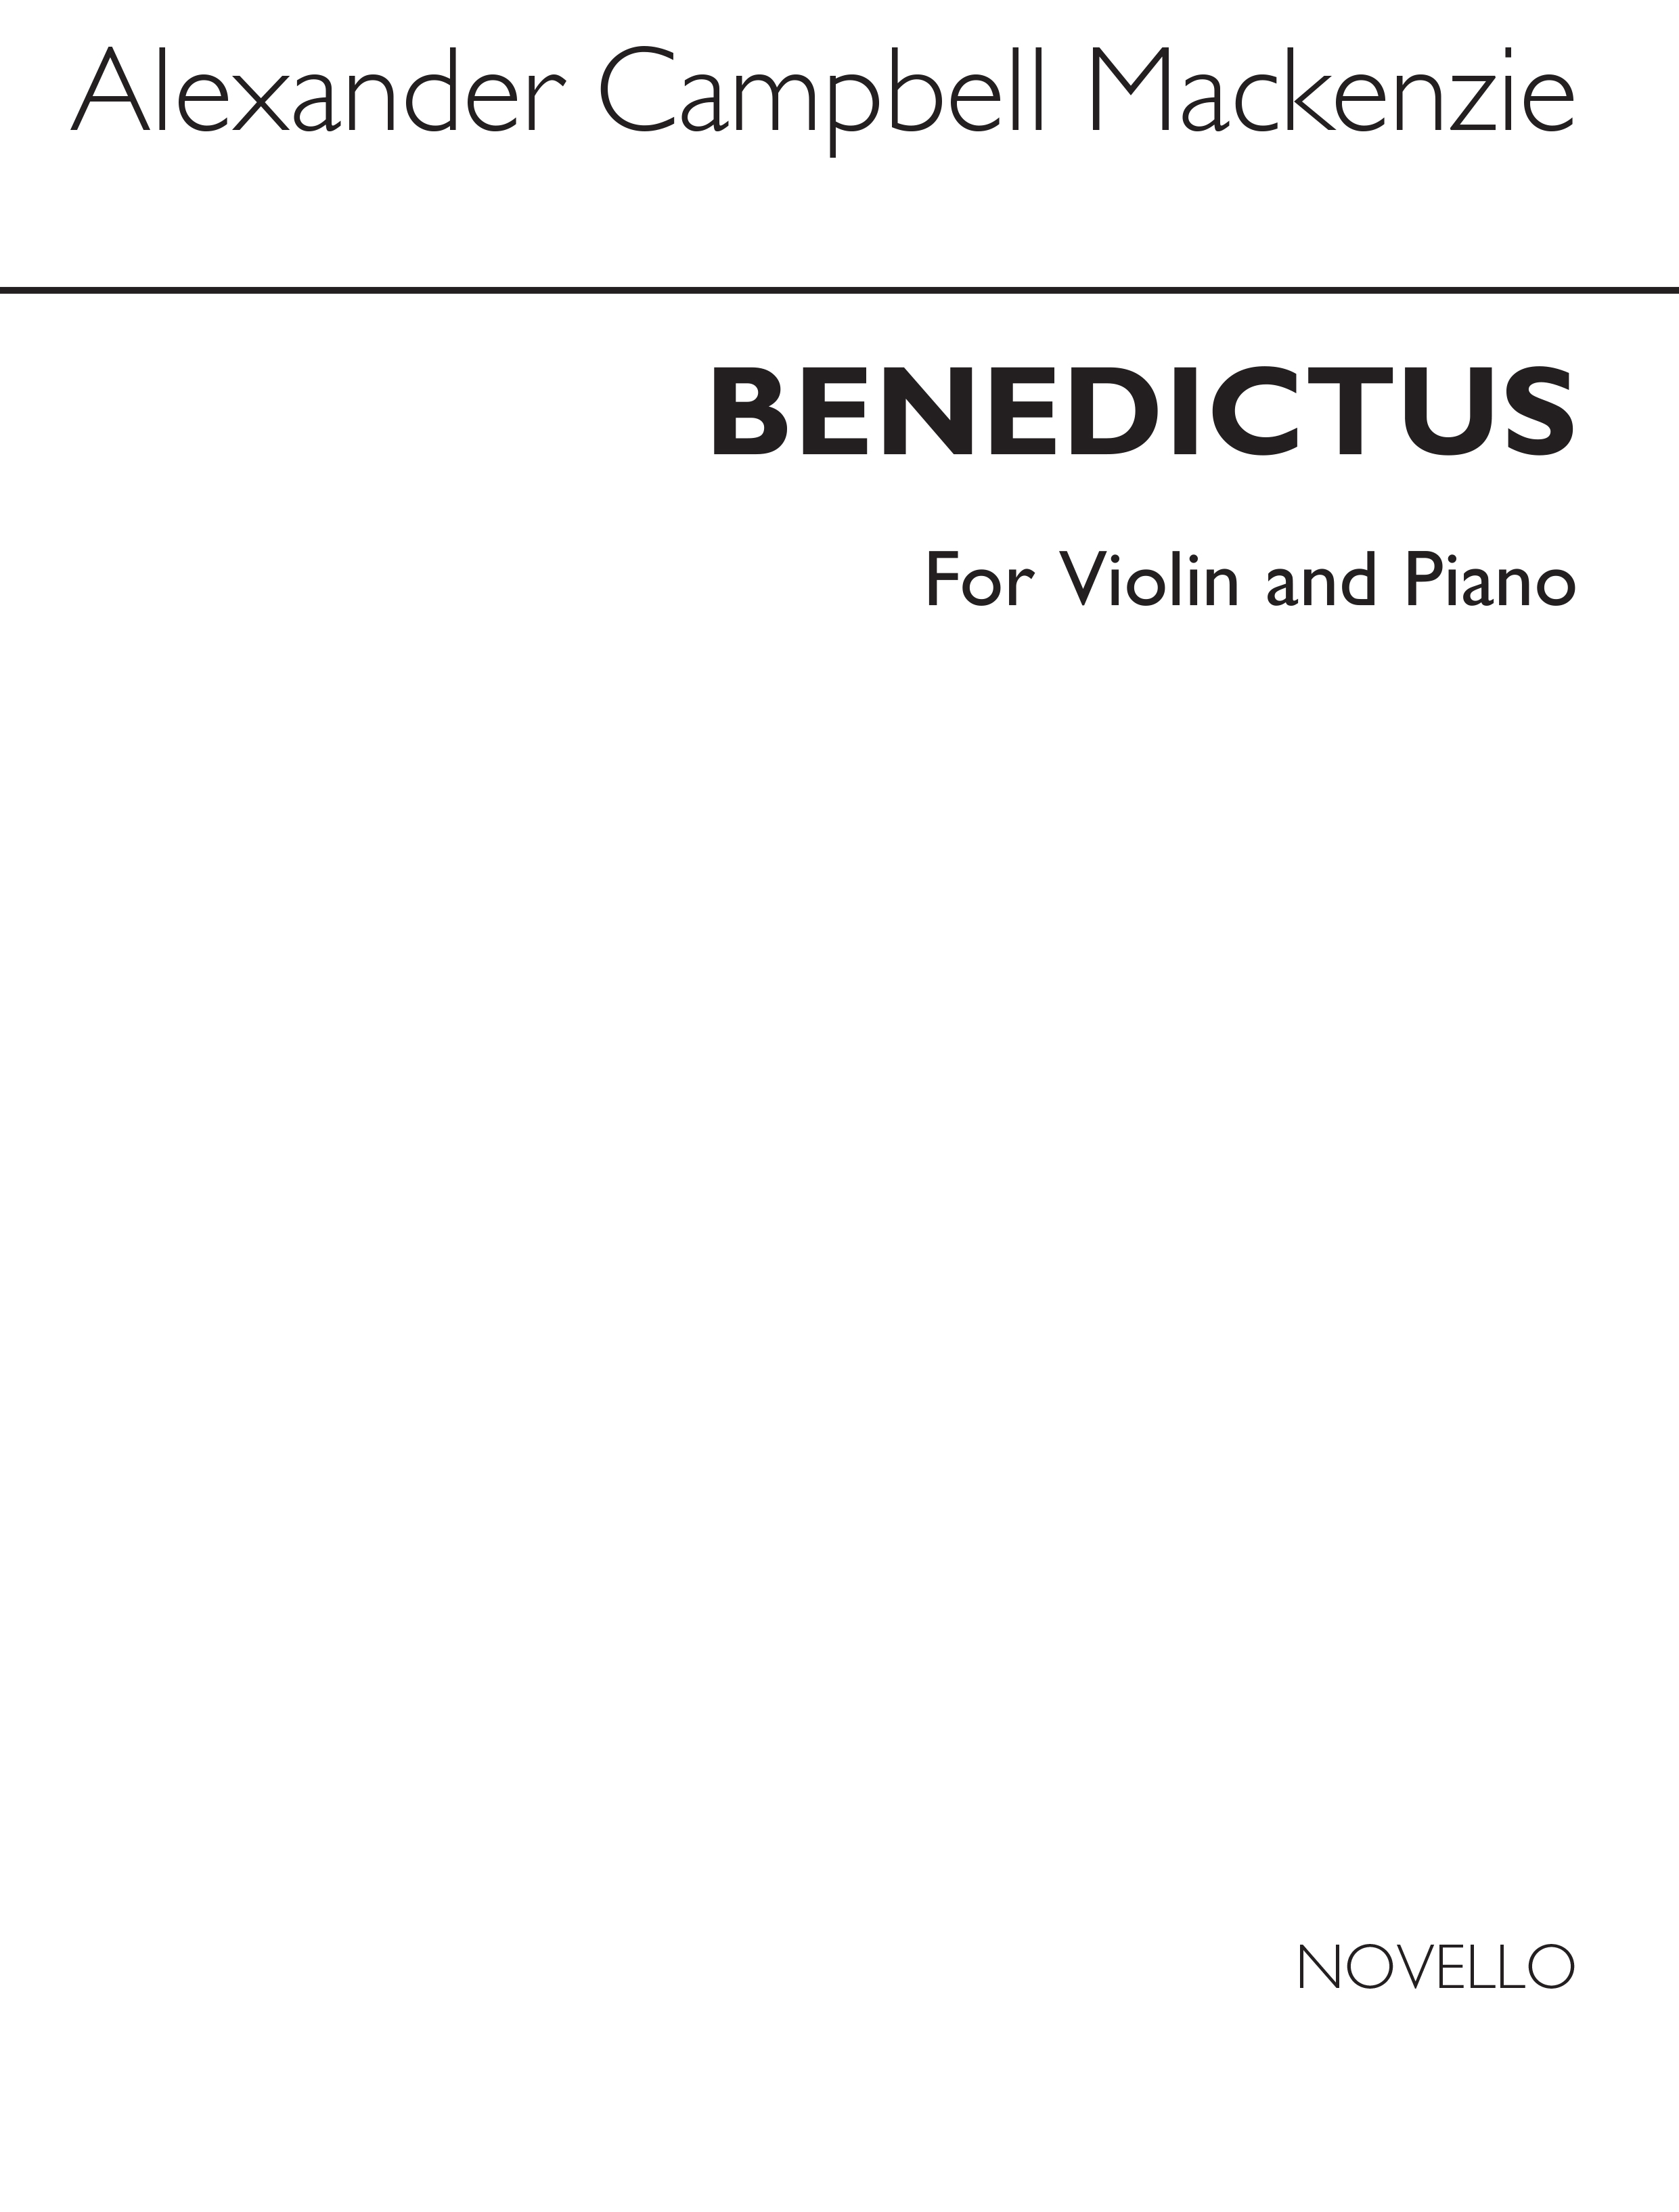 A.C. MacKenzie: Benedictus for Violin and Piano: Violin: Score and Parts